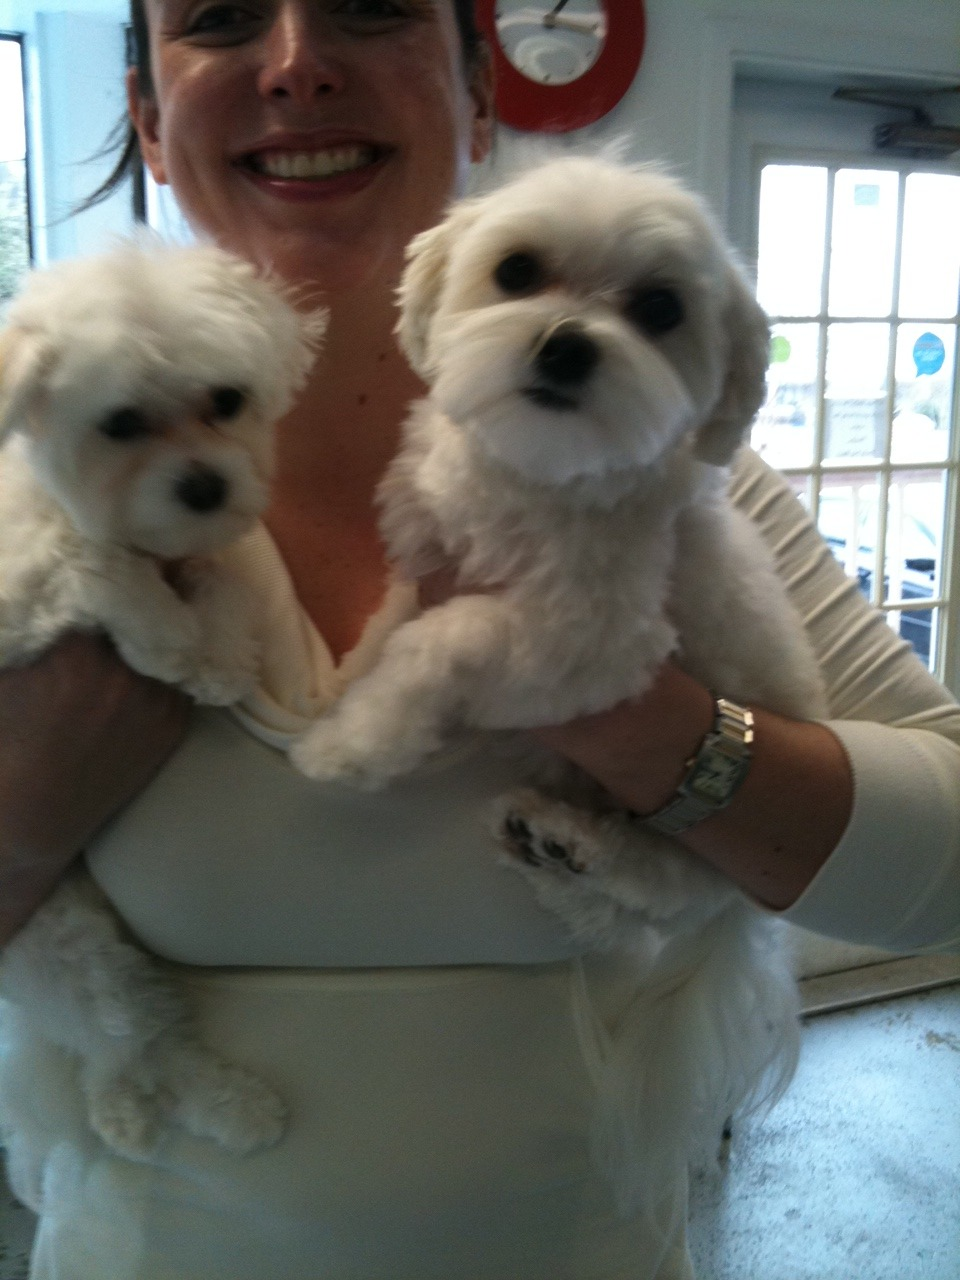 Tink & Izzy are so cute and prove how hard it is to get TWO pups to look at the camera! @bellebellebeau